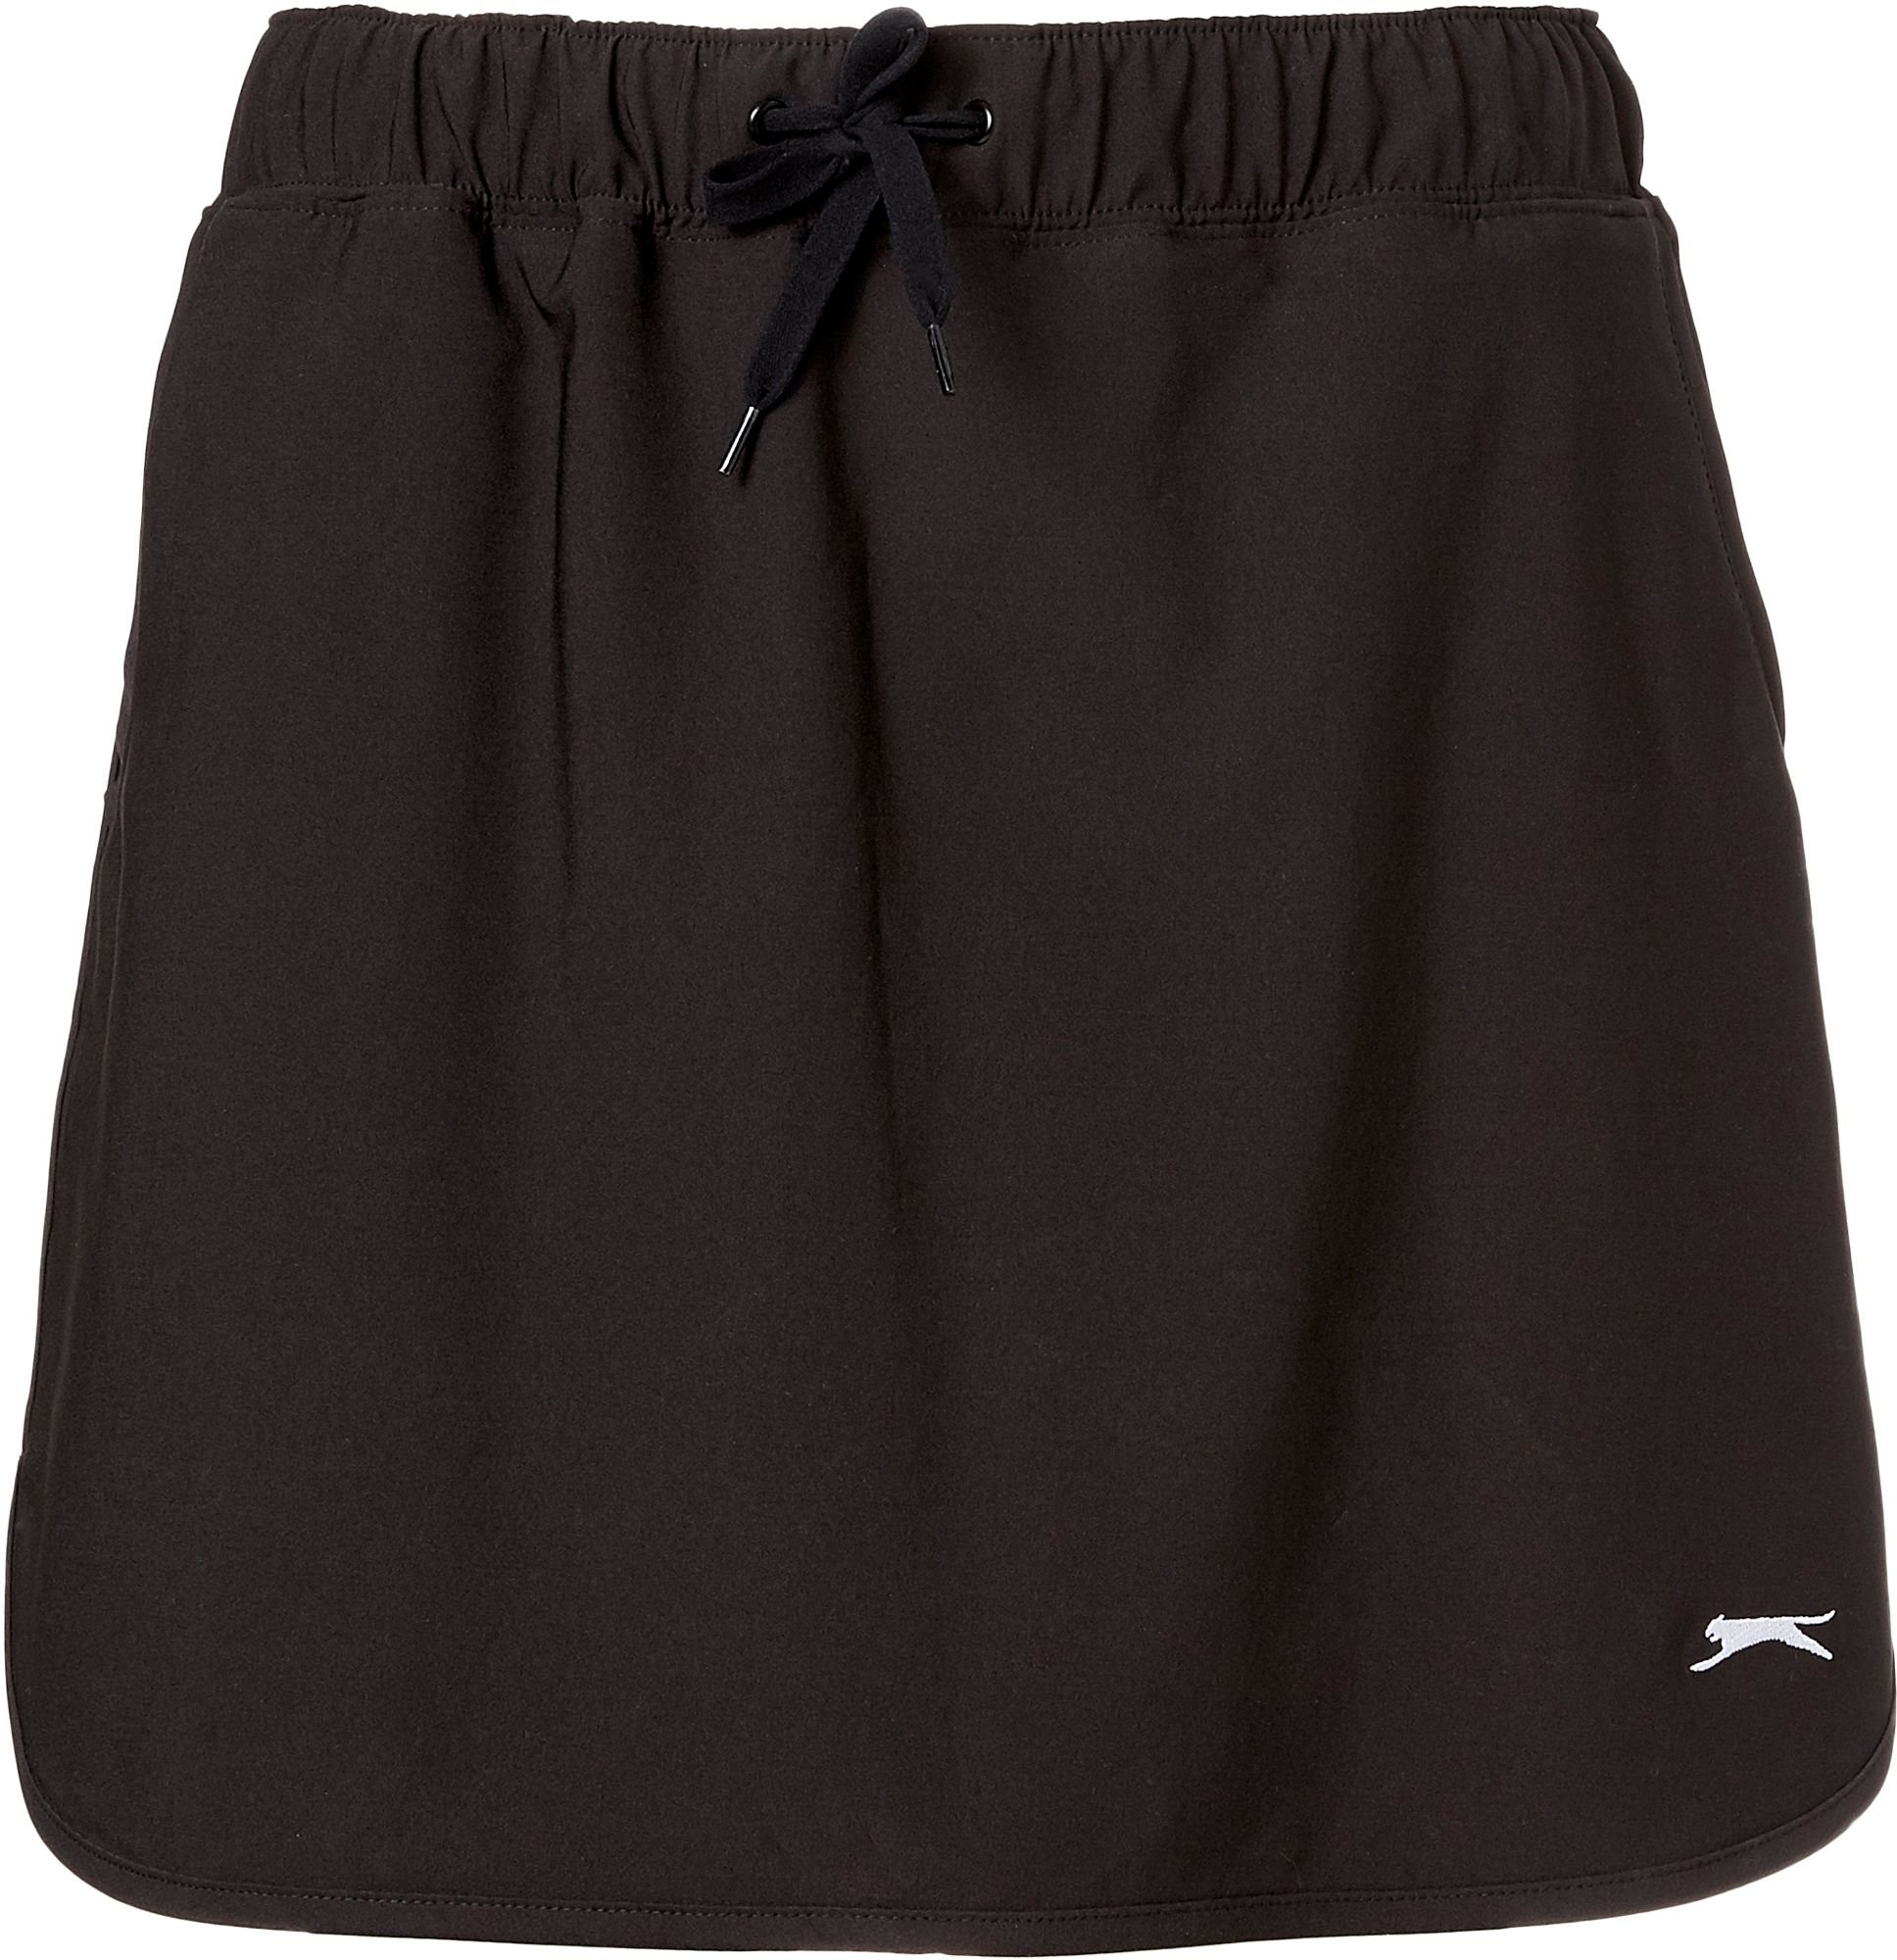 Slazenger Women's Tech Pull-On Golf Skort, (Black, M) by Slazenger